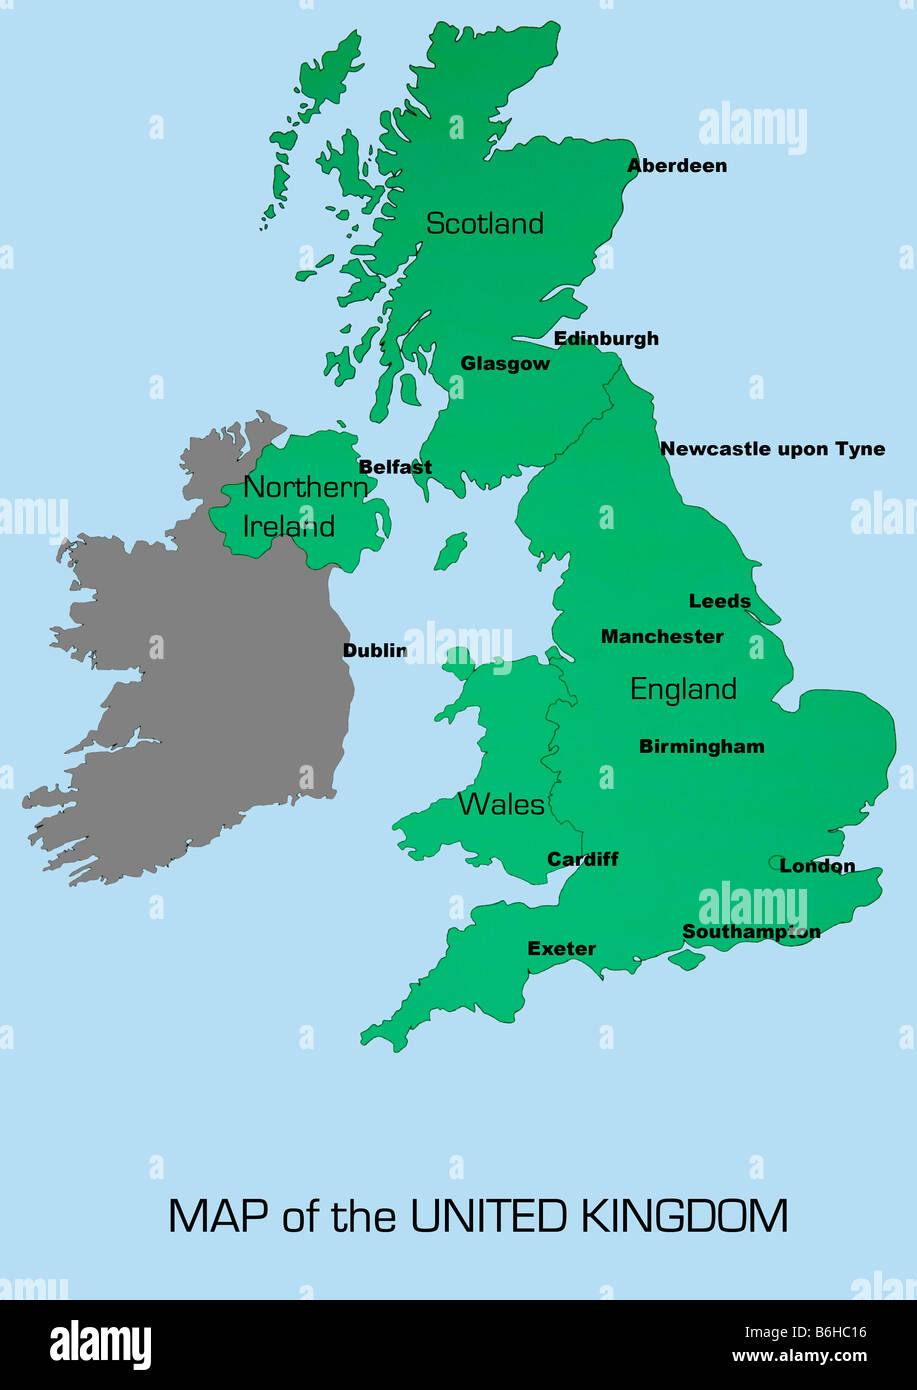 uk map showing england scotland wales and northern ireland with major cities